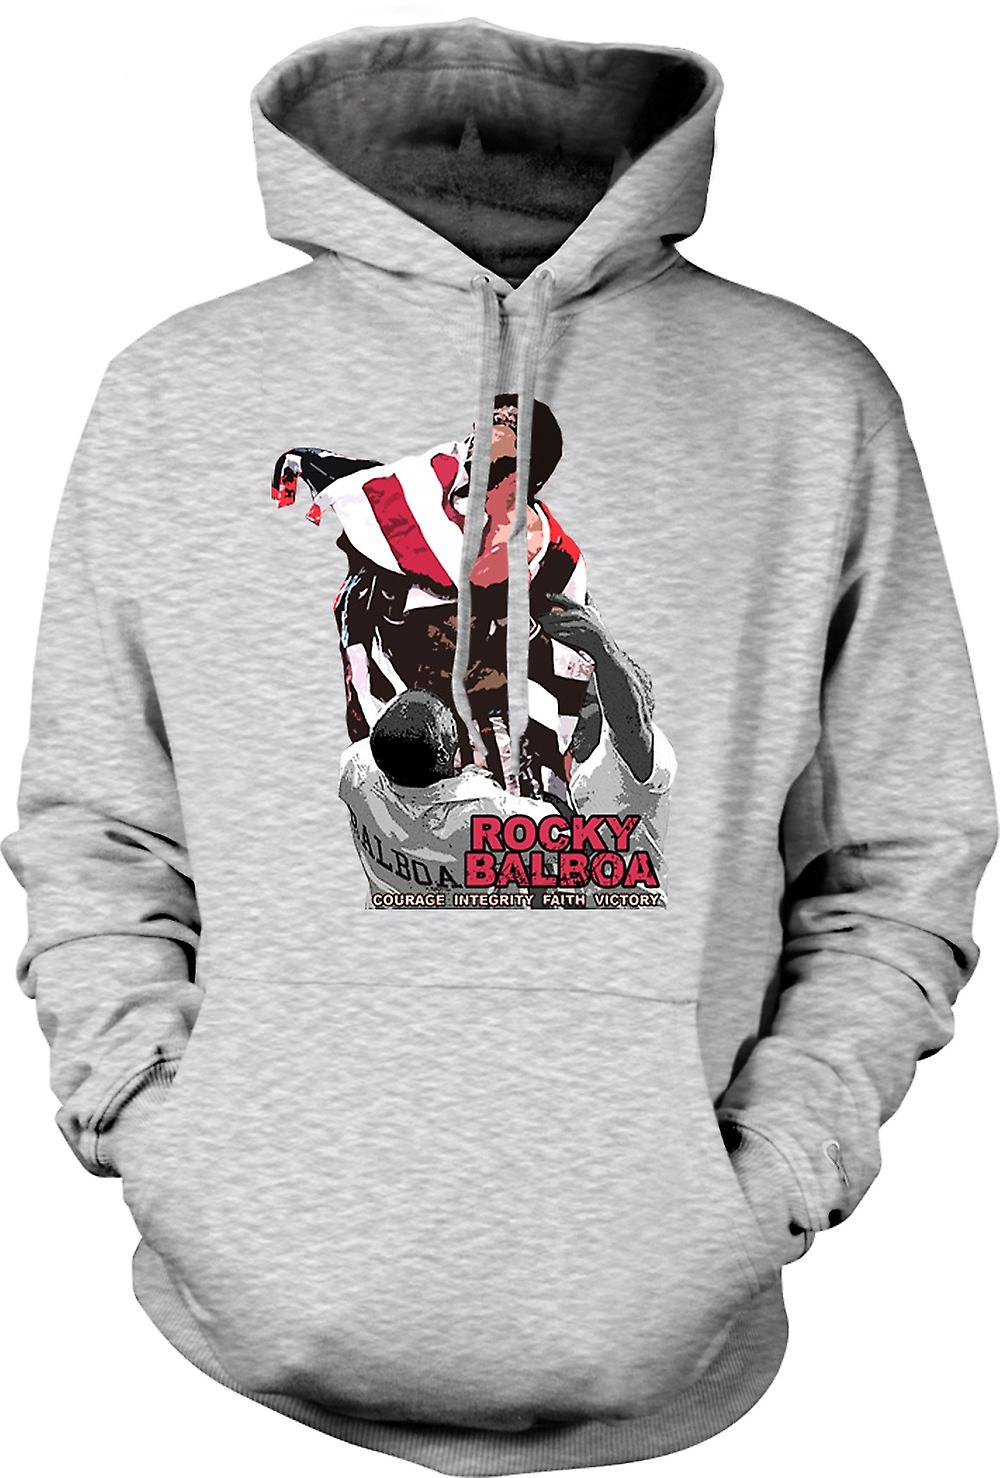 Mens Hoodie - Rocky Balboa - Courage - Boxing Movie